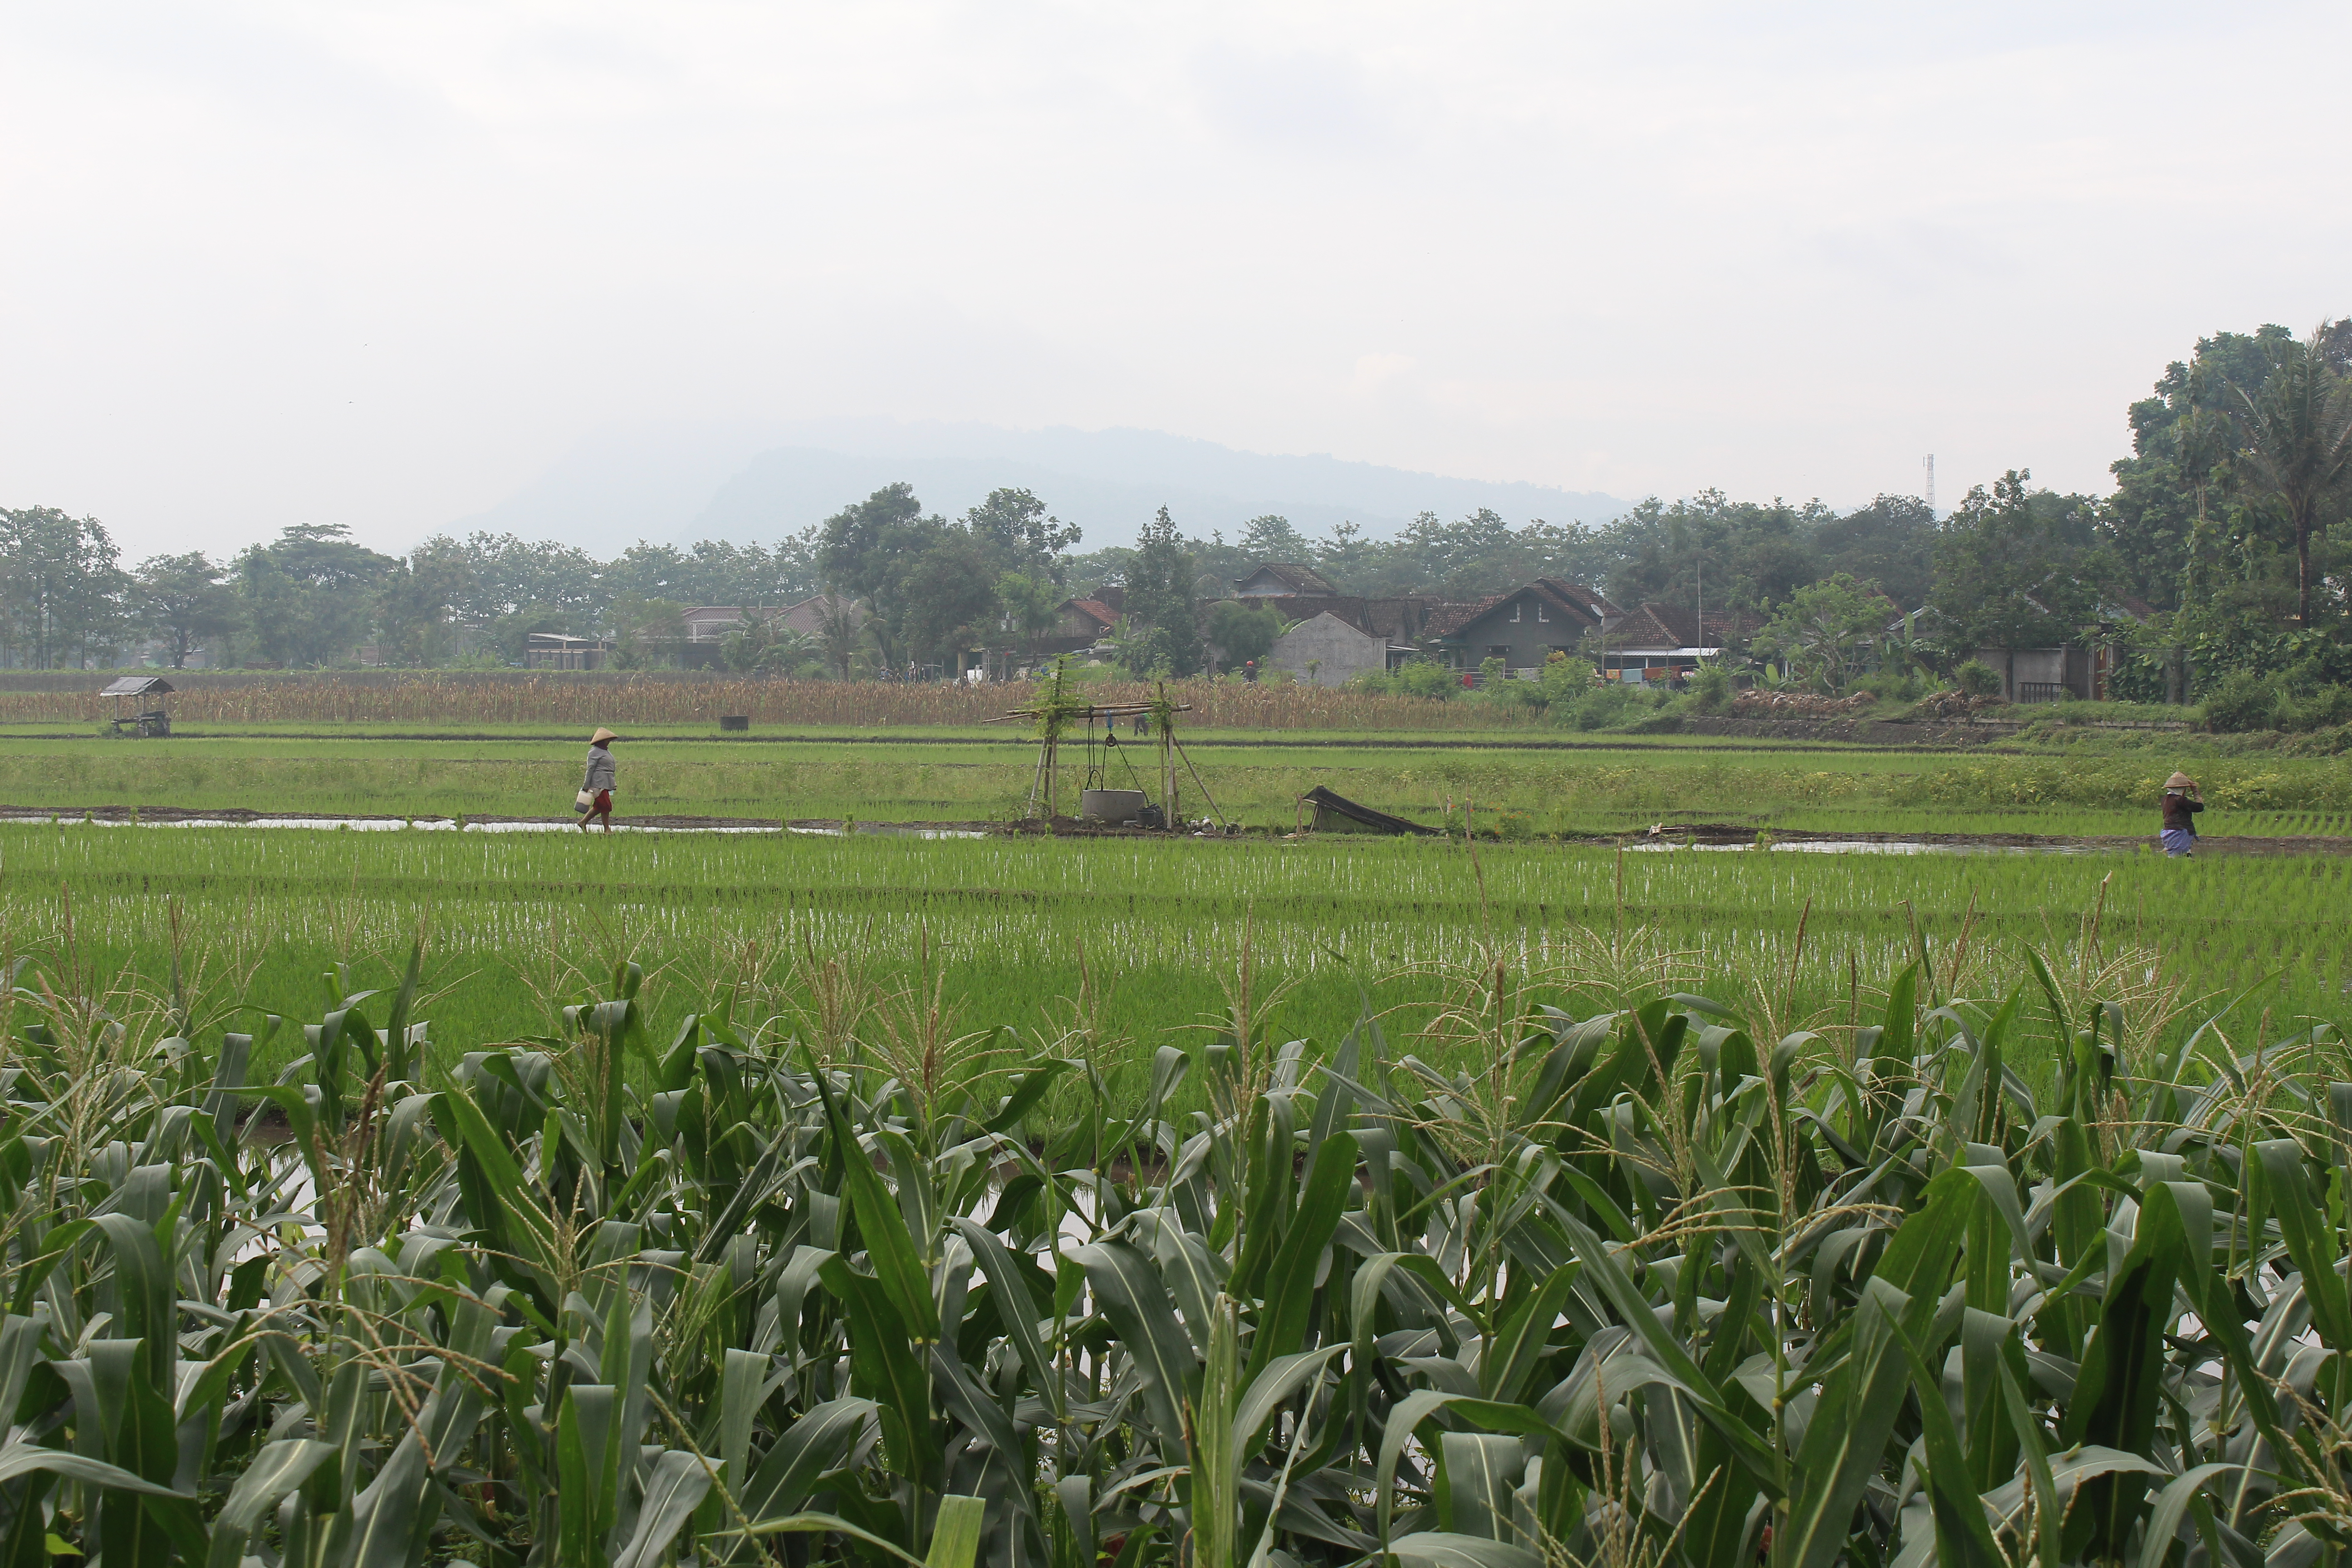 Rice fields with farmers